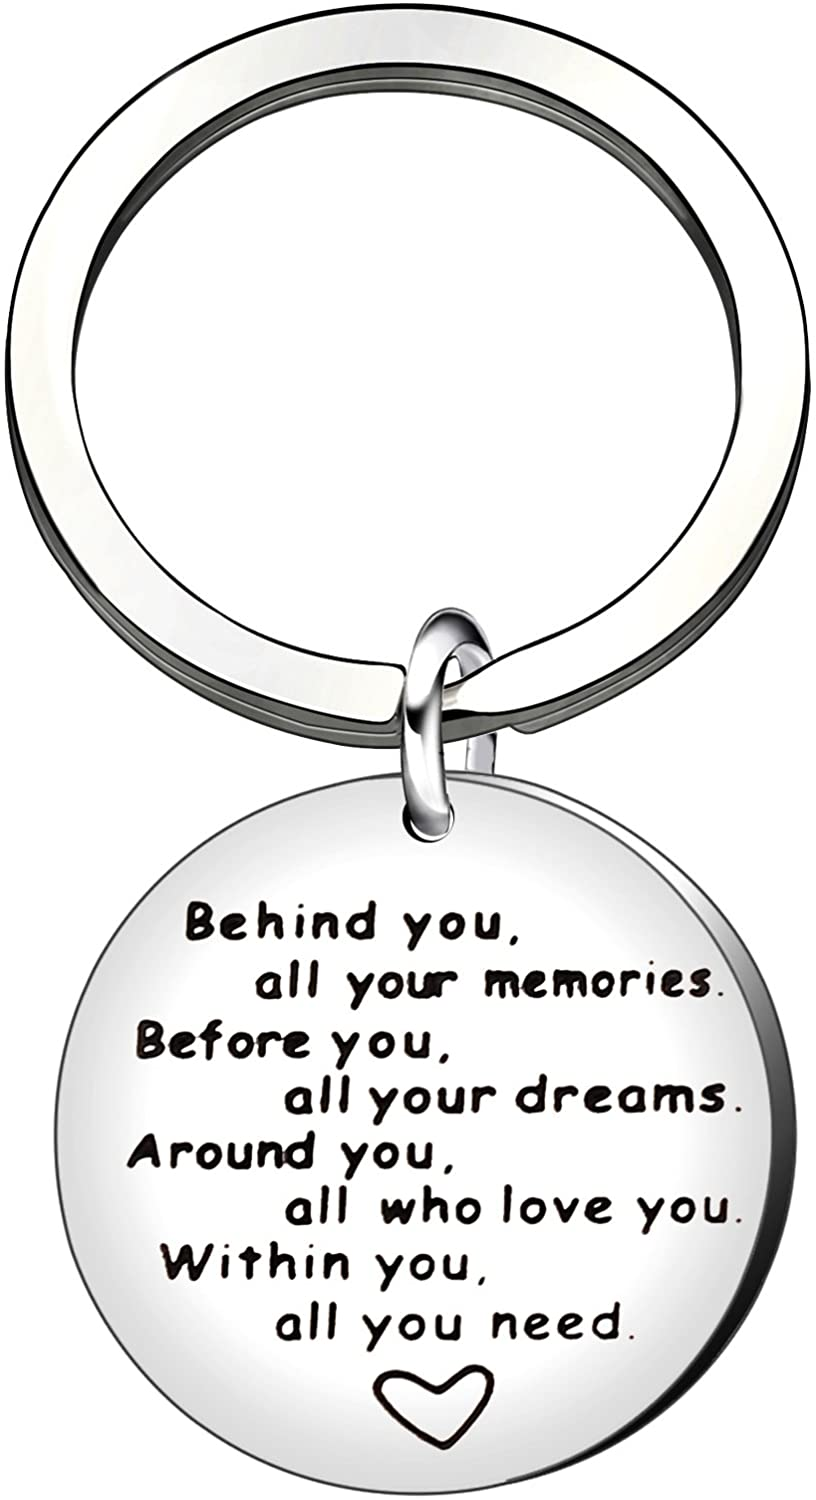 Graduation Keychain Inspirational Graduation Gifts Best Friend Behind You All Memories Before You All Your Dream